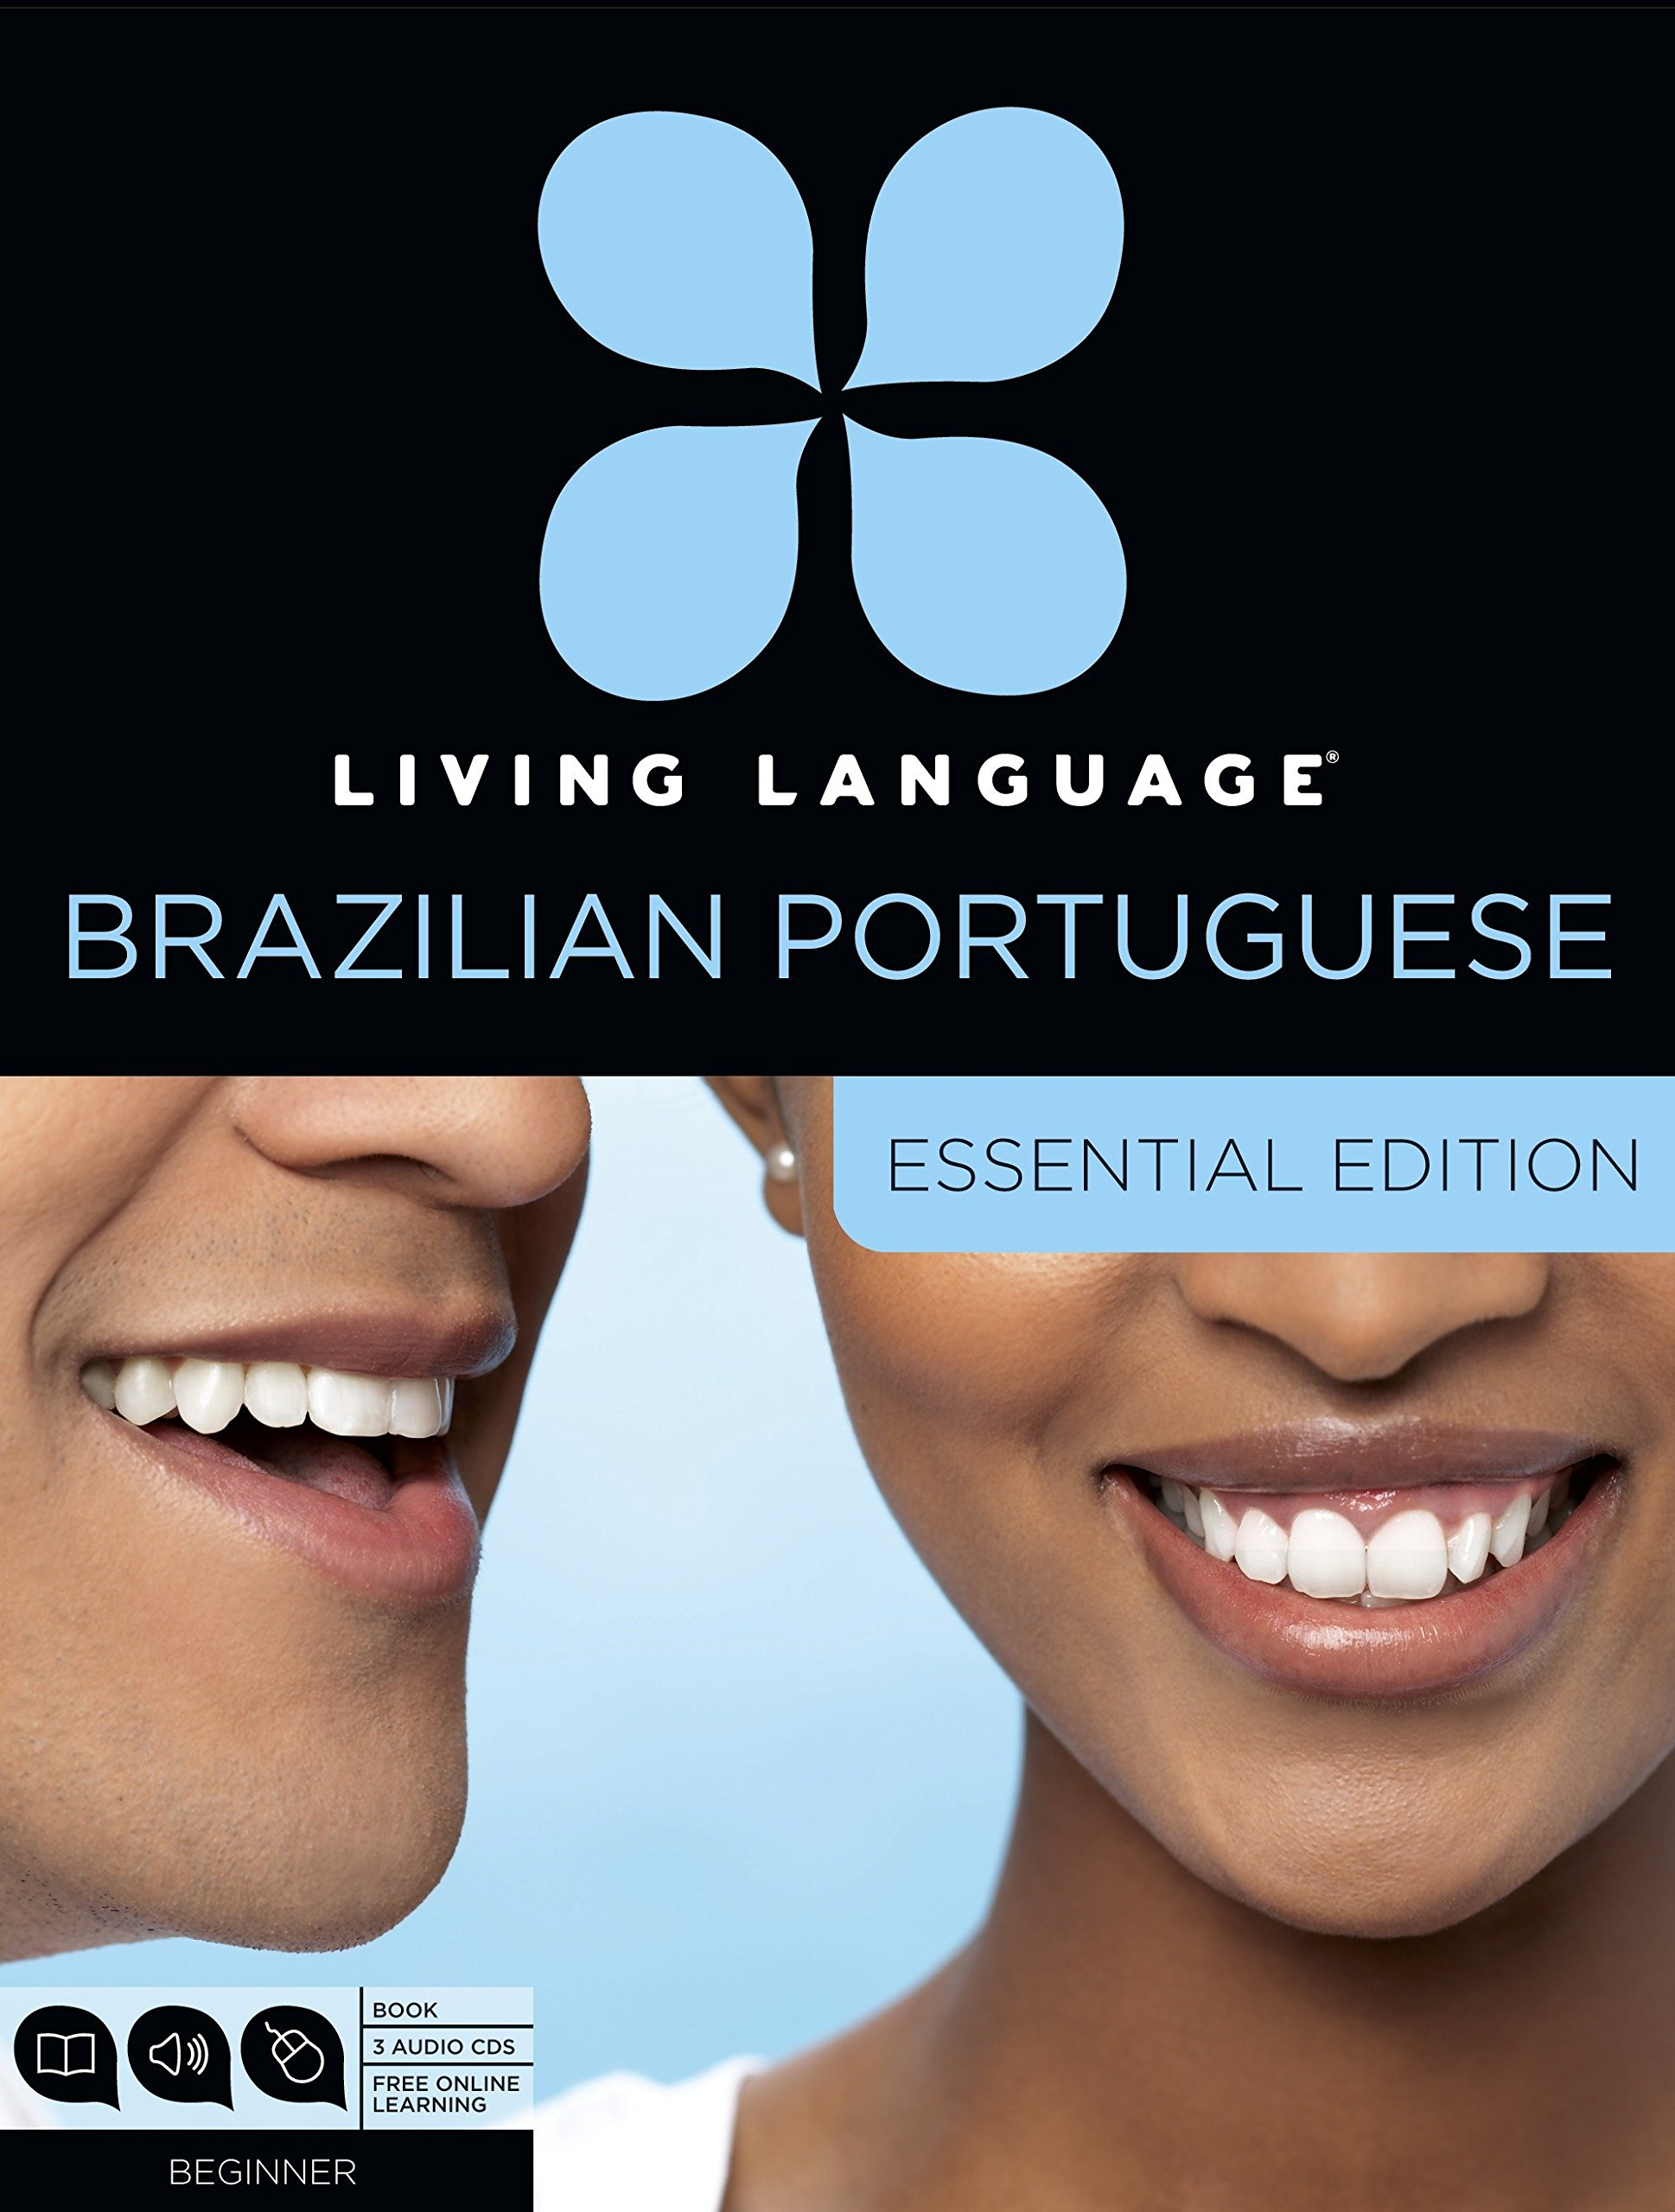 Living Language Brazilian Portuguese, Essential Edition: Beginner course, including coursebook, 3 audio CDs, and free online learning